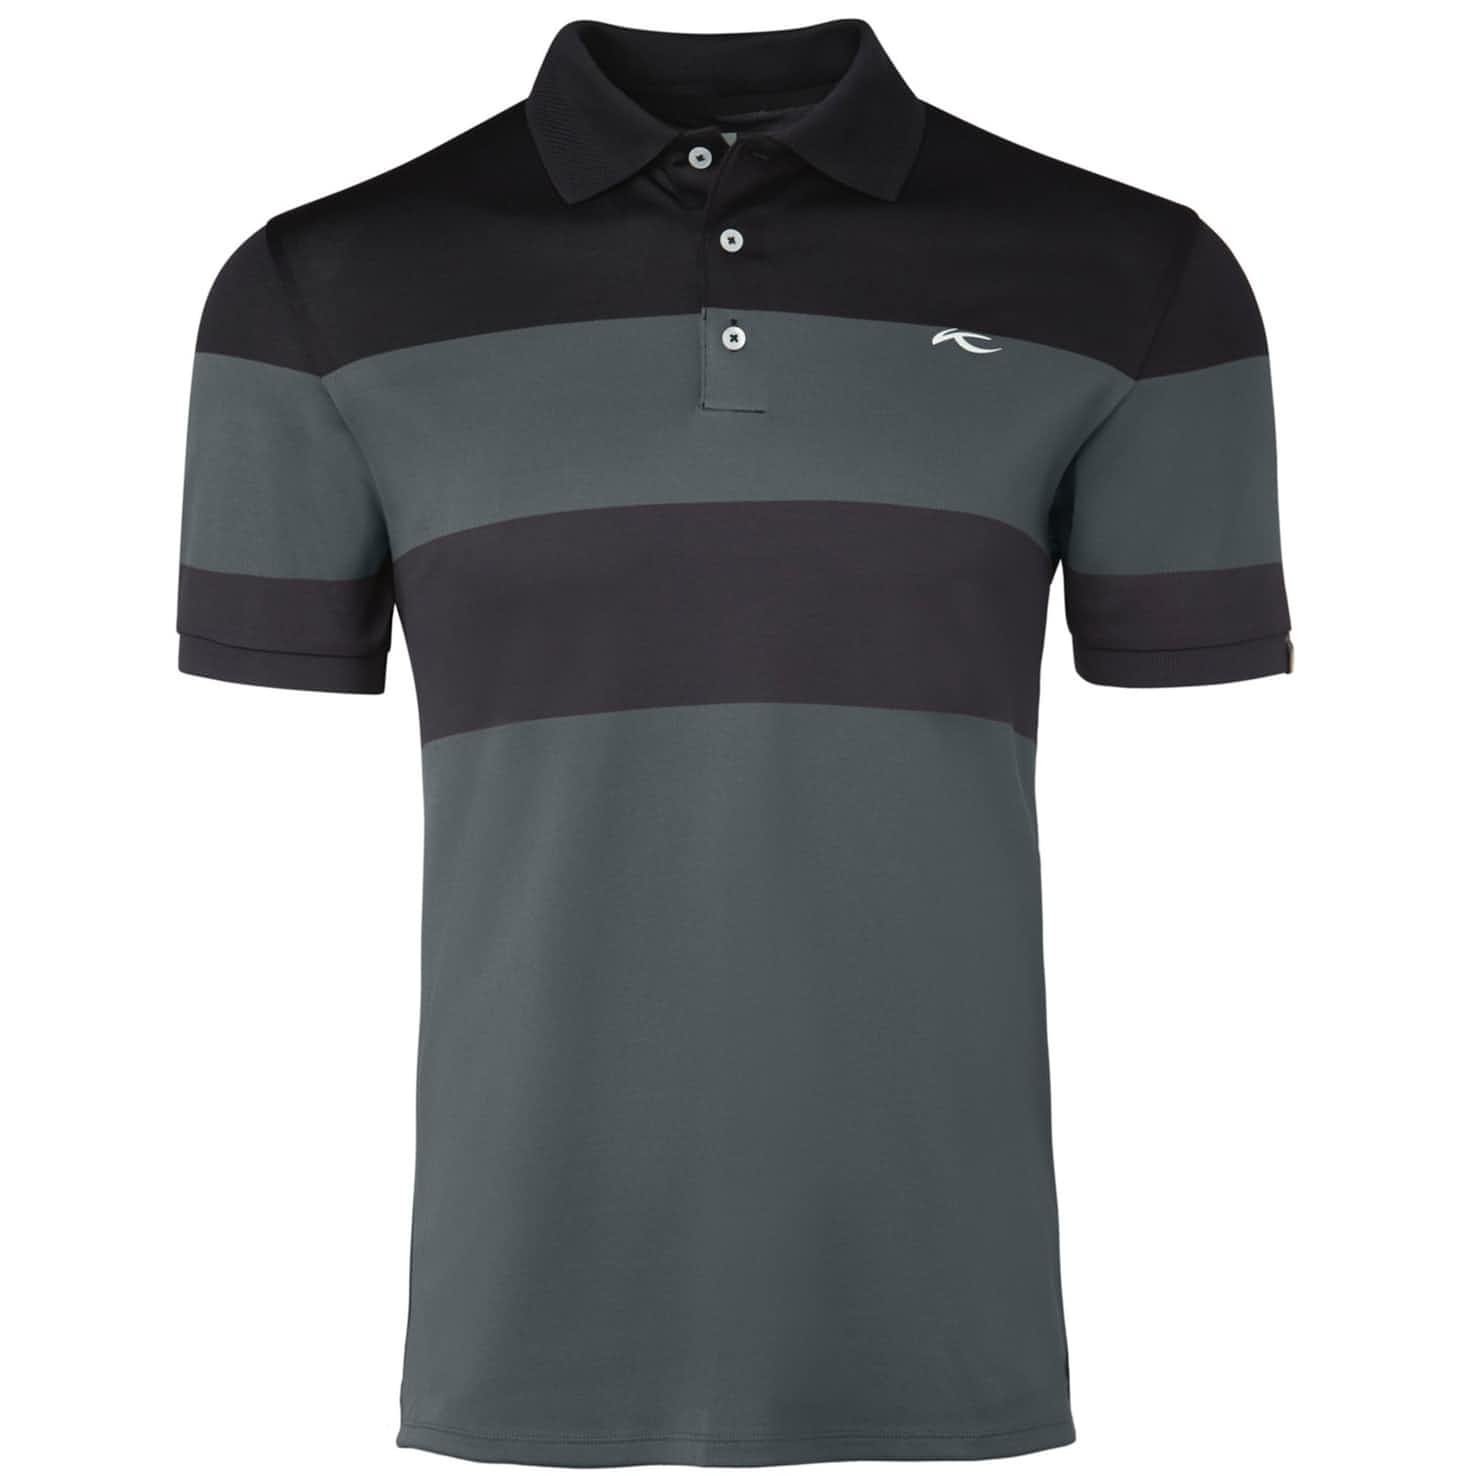 Luan Colourblock Polo Steel Grey/Black - SS20